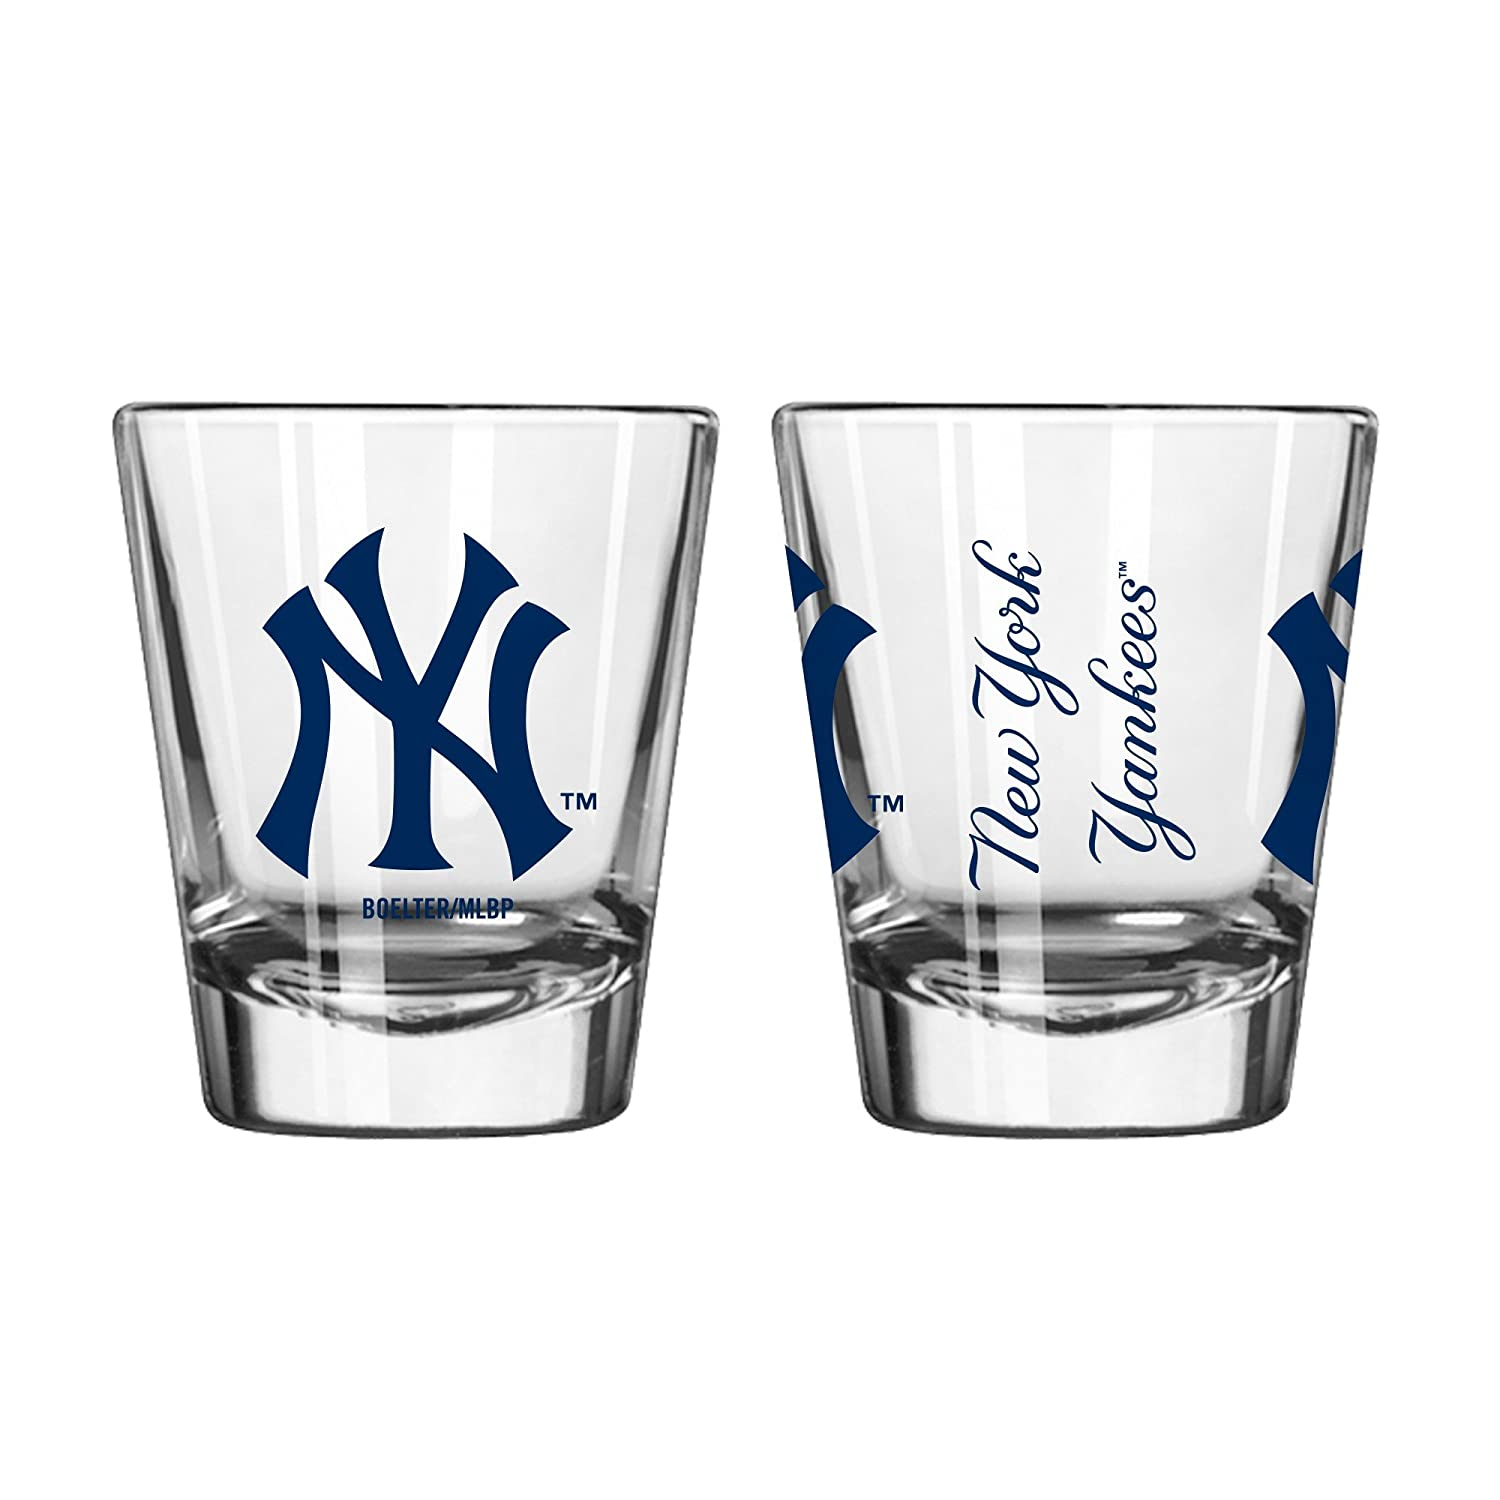 Official Fan Shop Authentic MLB Logo 2 oz Shot Glasses 2-Pack Bundle. Show Team Pride at Home, Your Bar or at The Tailgate. Gameday Shot Glasses for a Goodnight Boelter